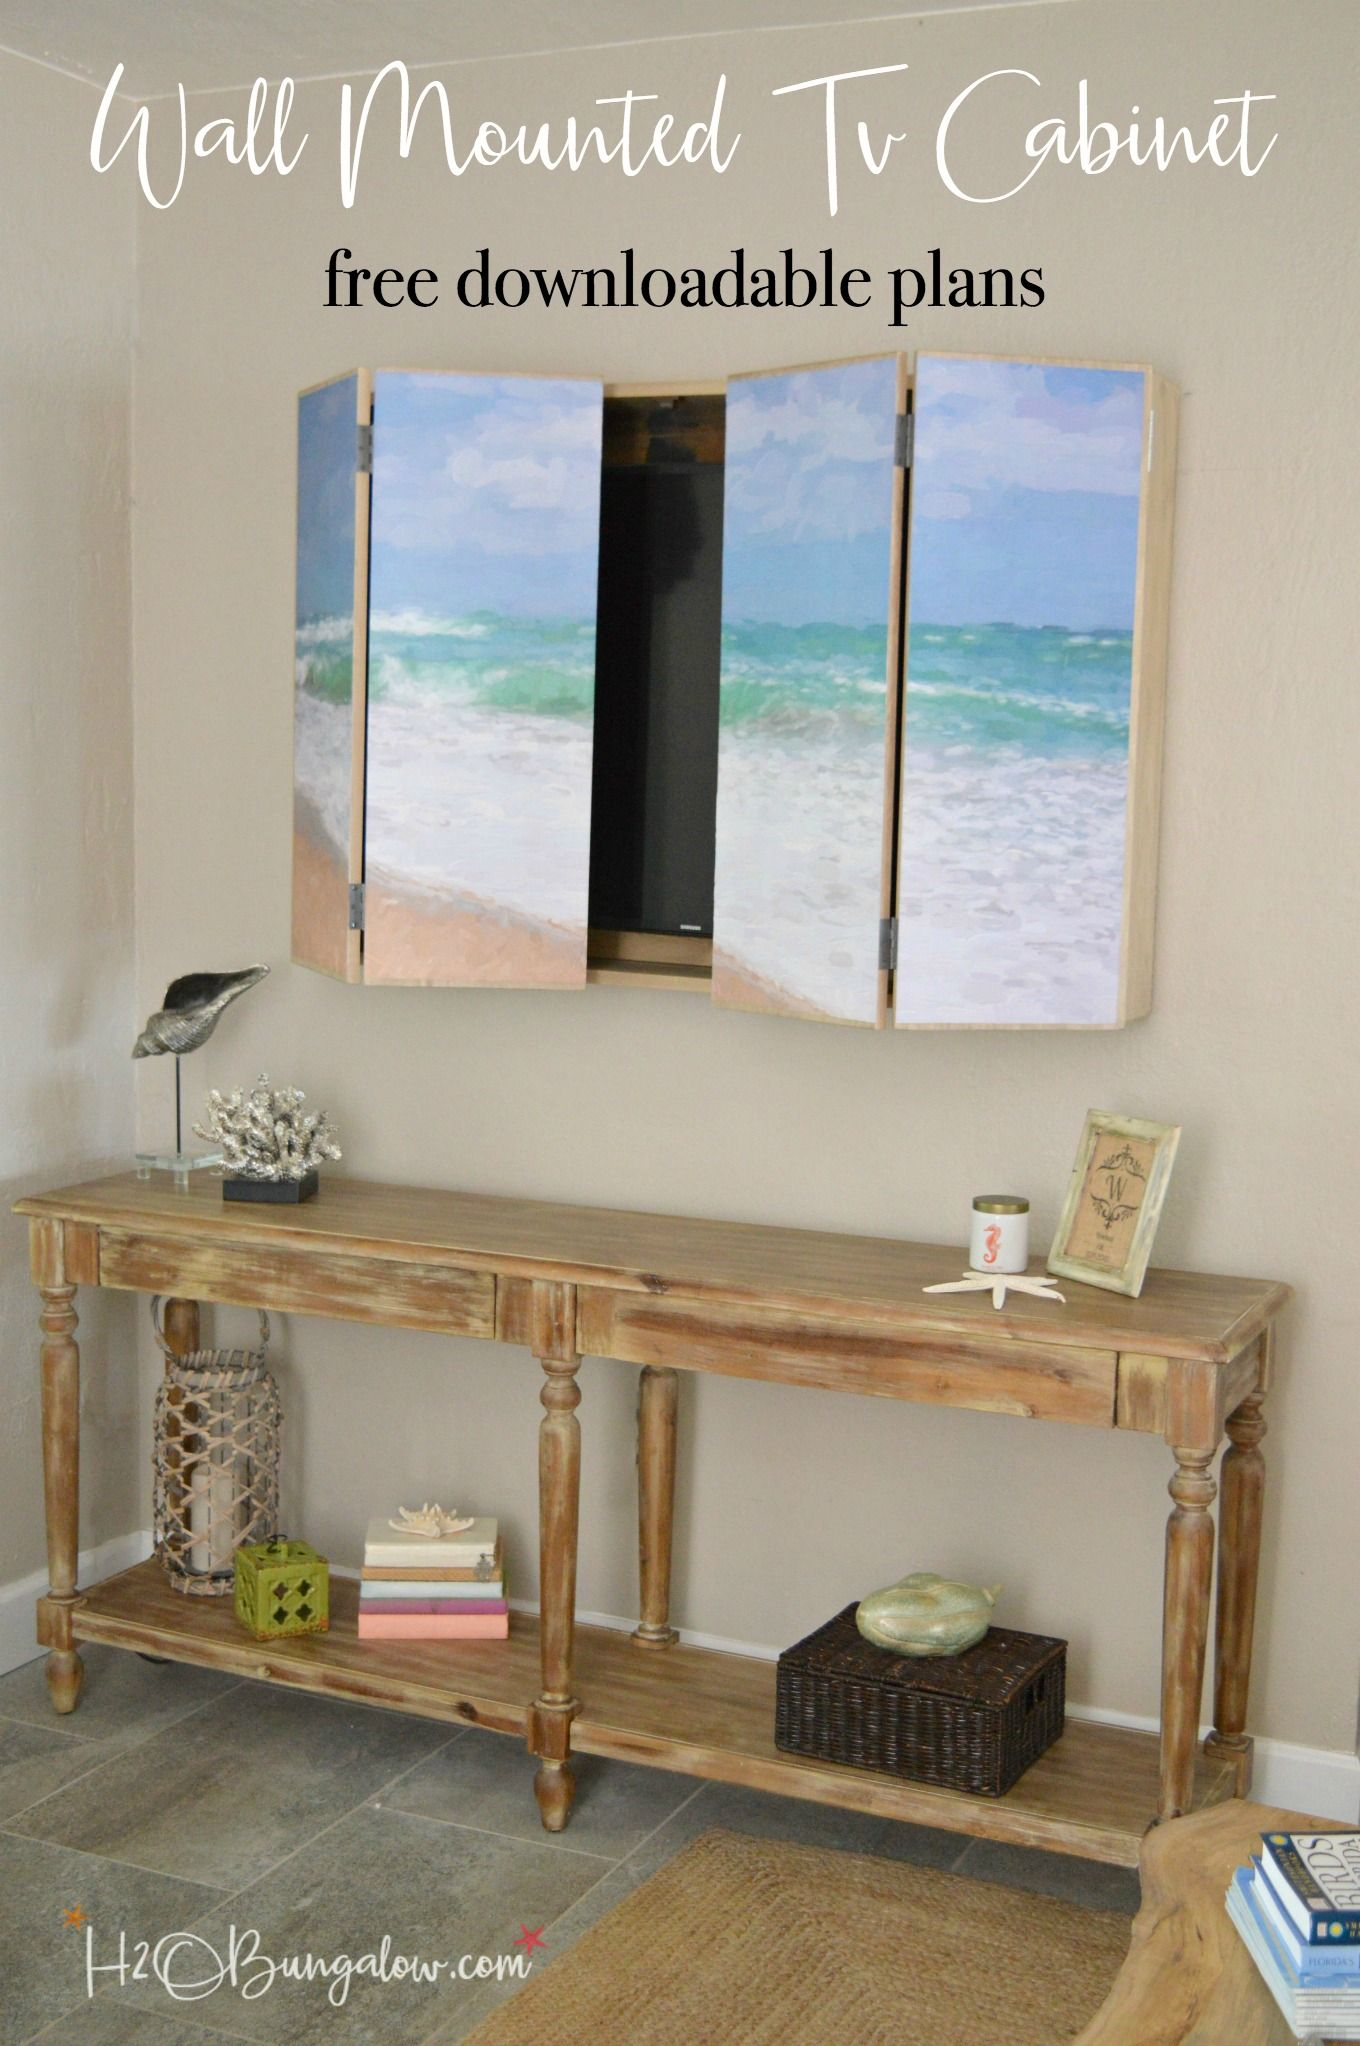 Diy Wall Mounted Tv Cabinet With Free Plans Wall Mounted Tv